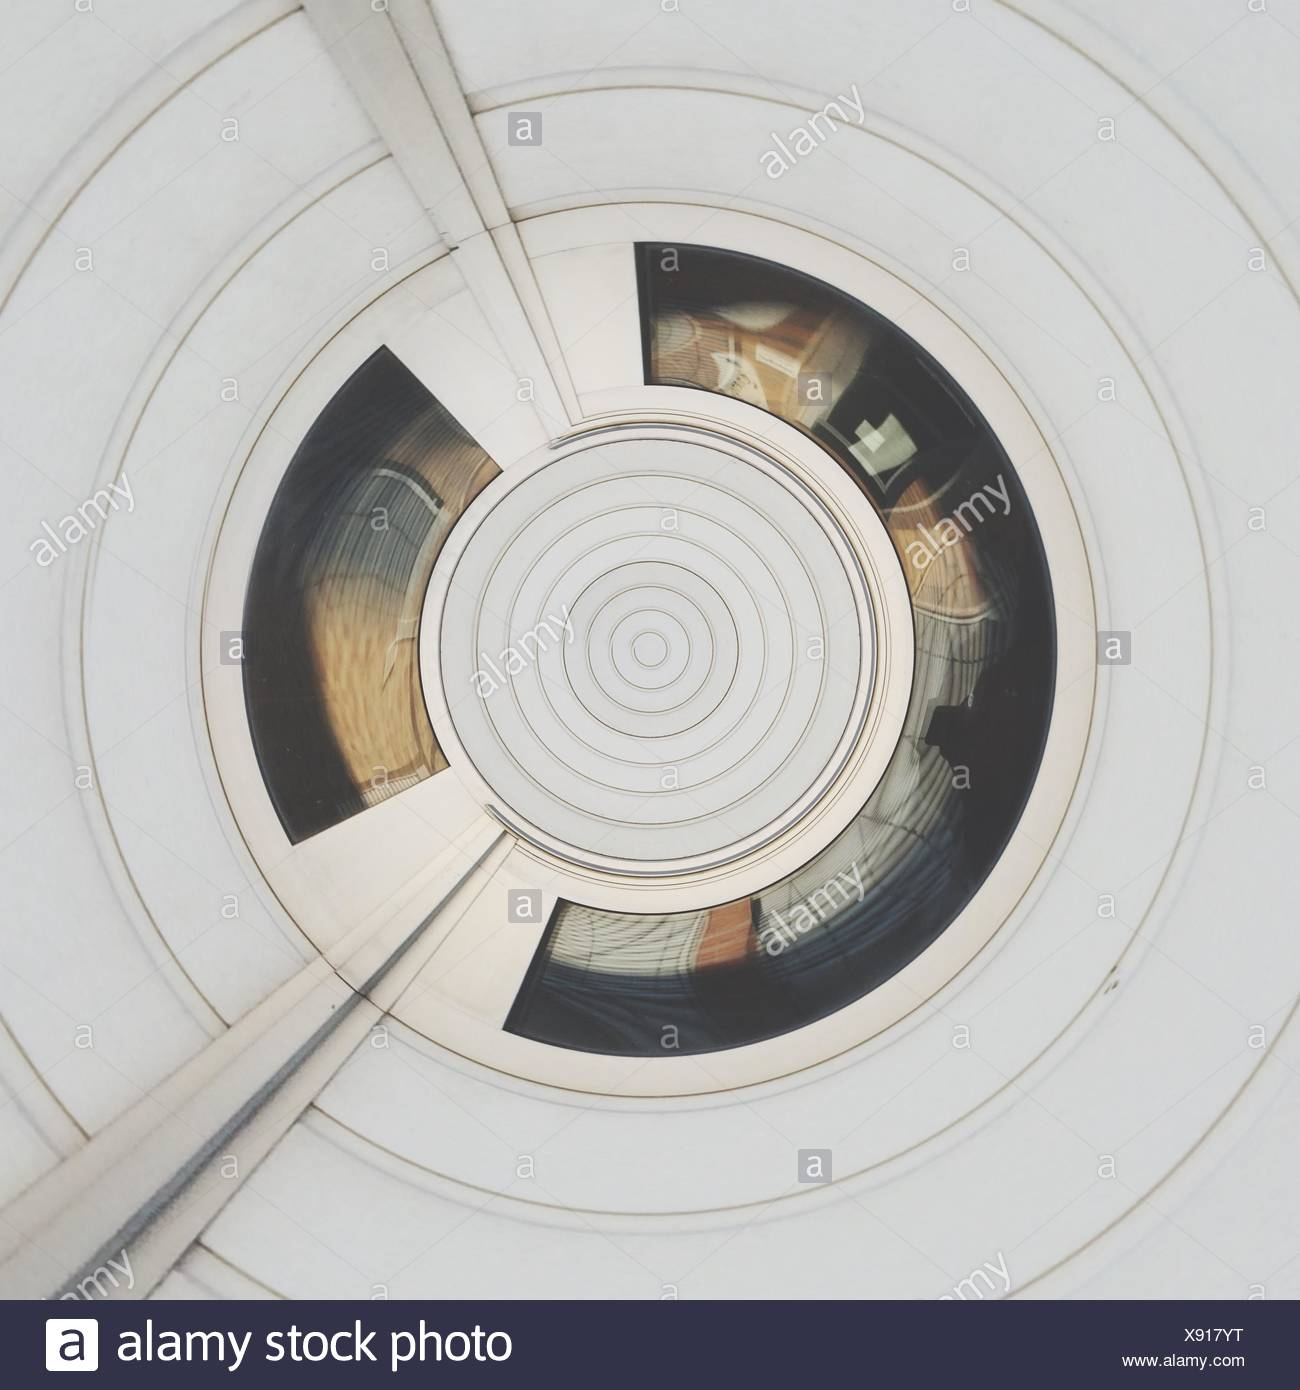 Abstract Concentric White Pattern Stock Photo